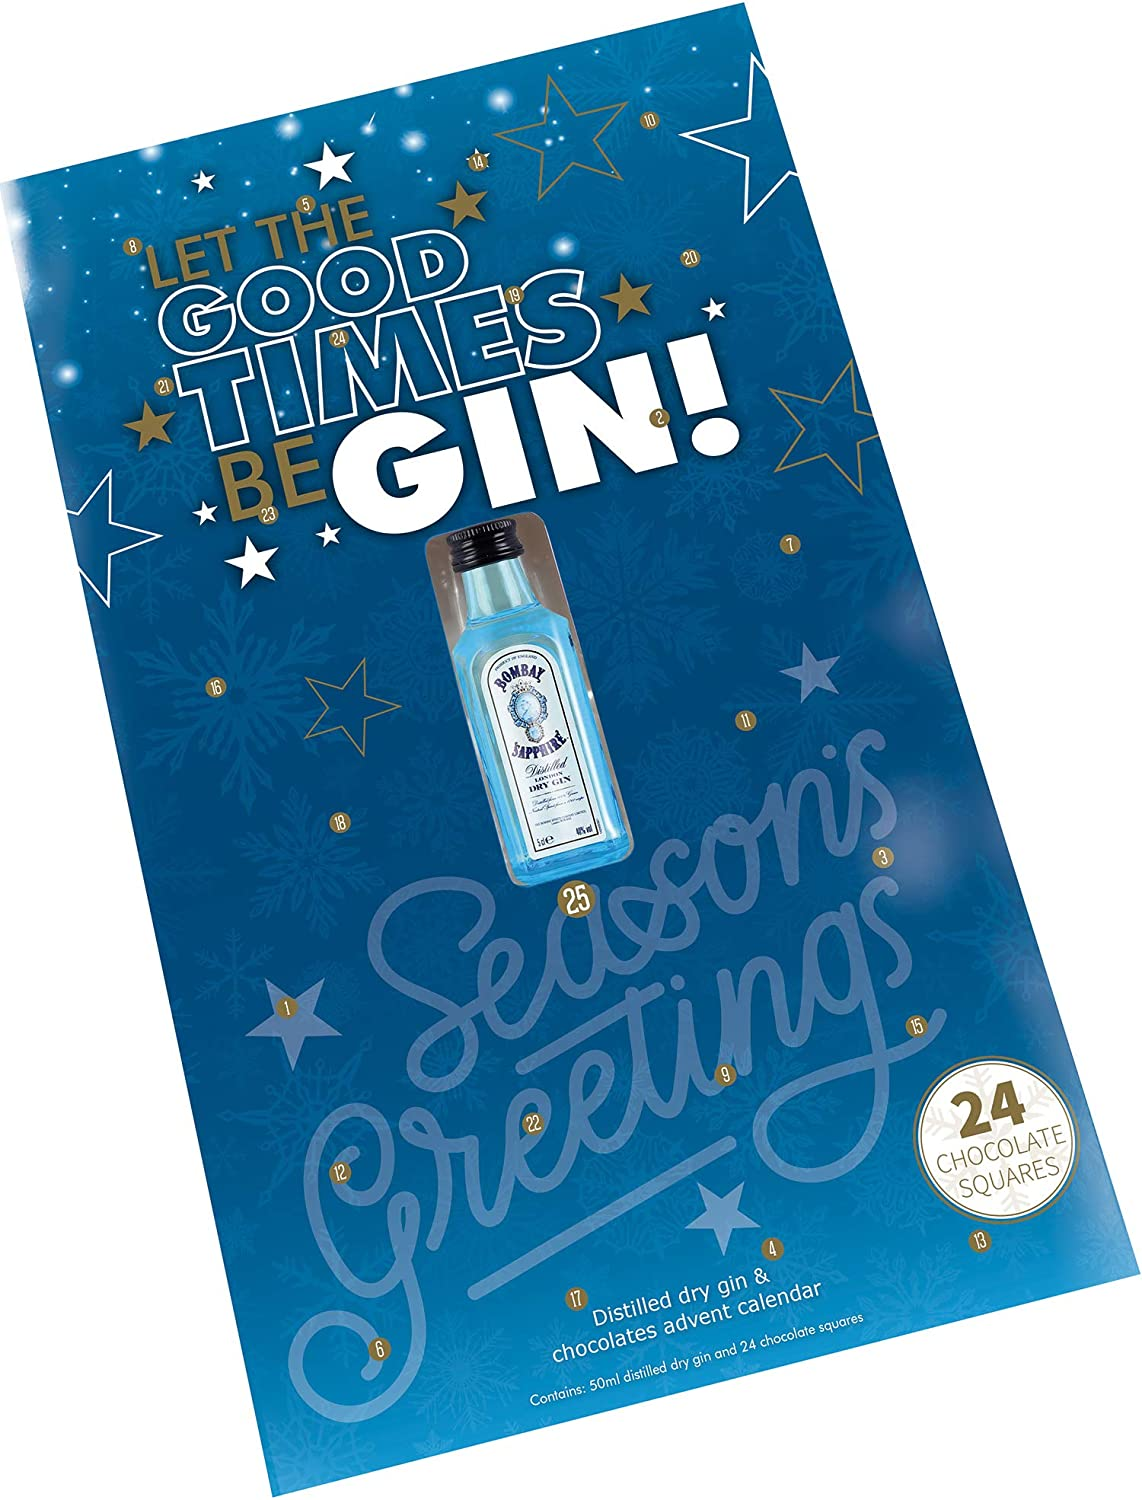 Let The Good Times Be GIN!